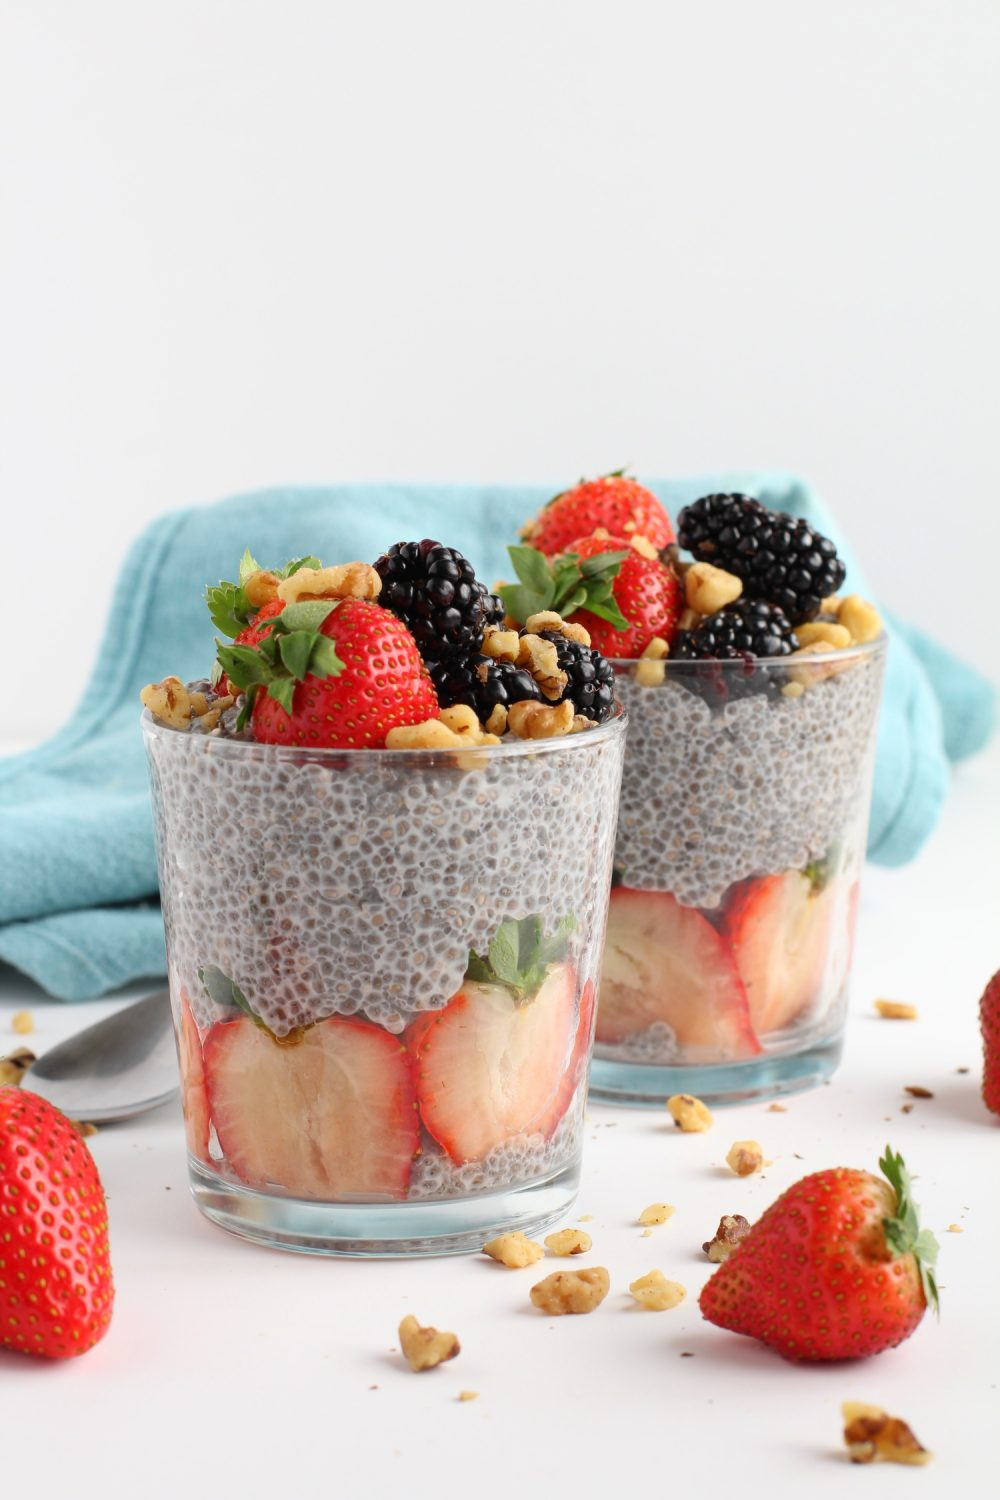 chia pudding meal prep